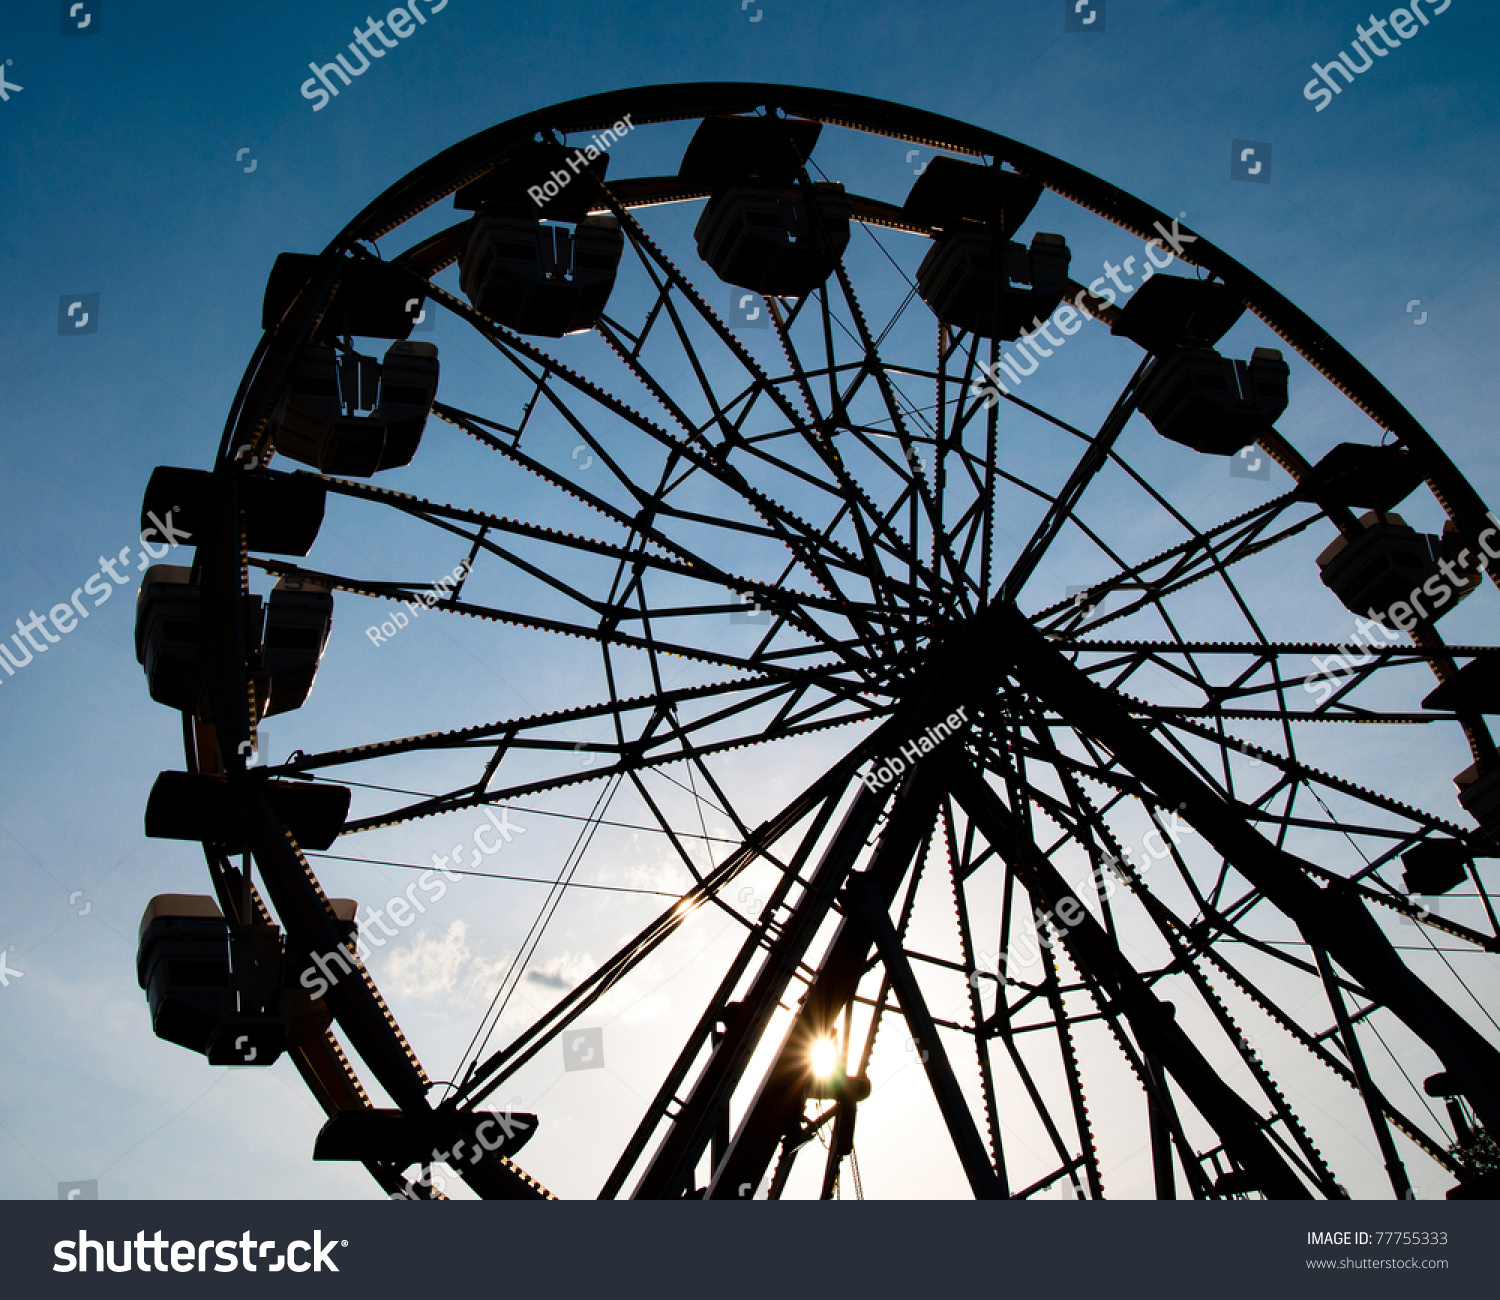 Silhouette Of Ferris Wheel At Sunset At County Fair. Stock ...